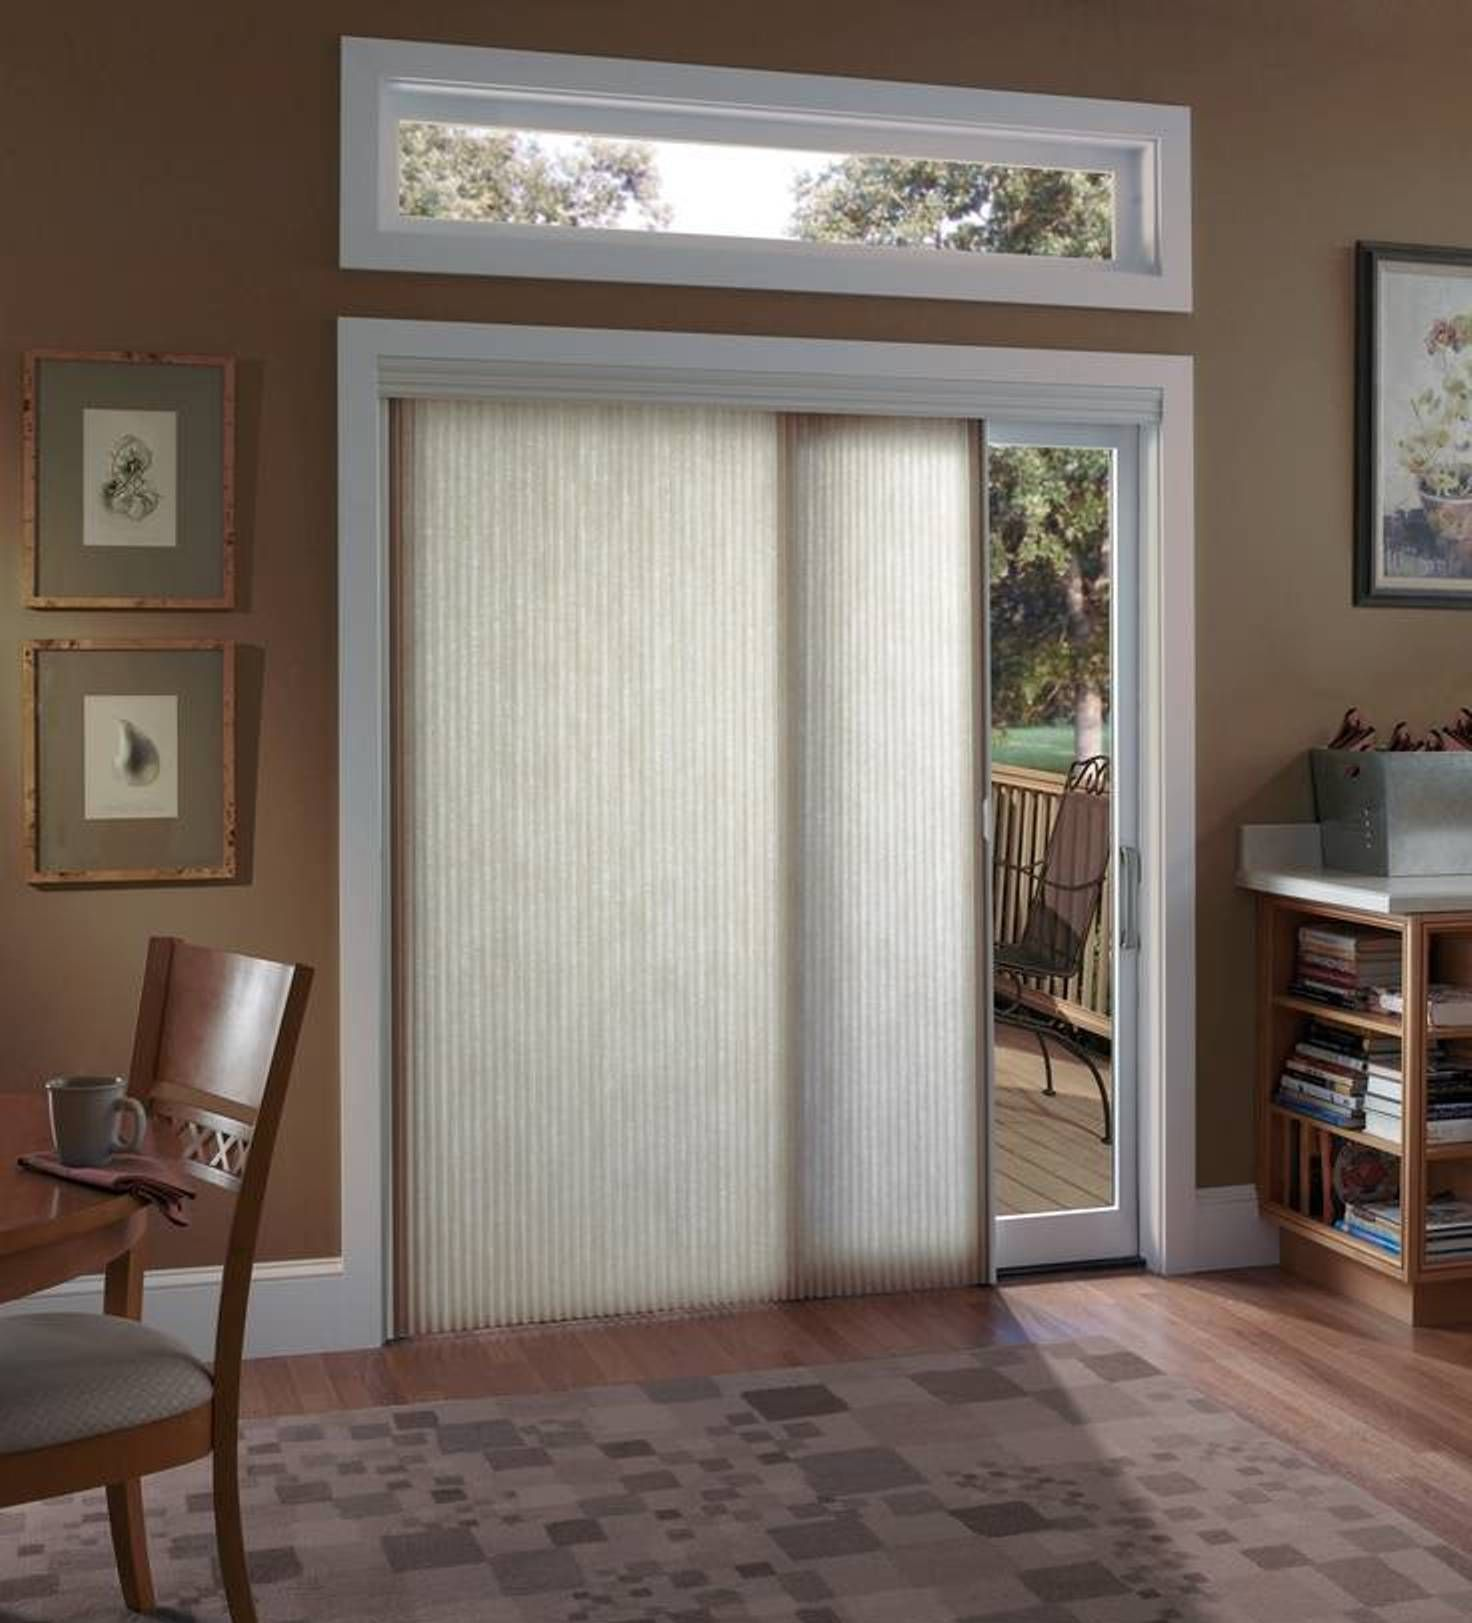 Window treatment ideas for sliding glass patio doors - Drapes For Sliding Glass Doors Https Www Educationalequipment Com K